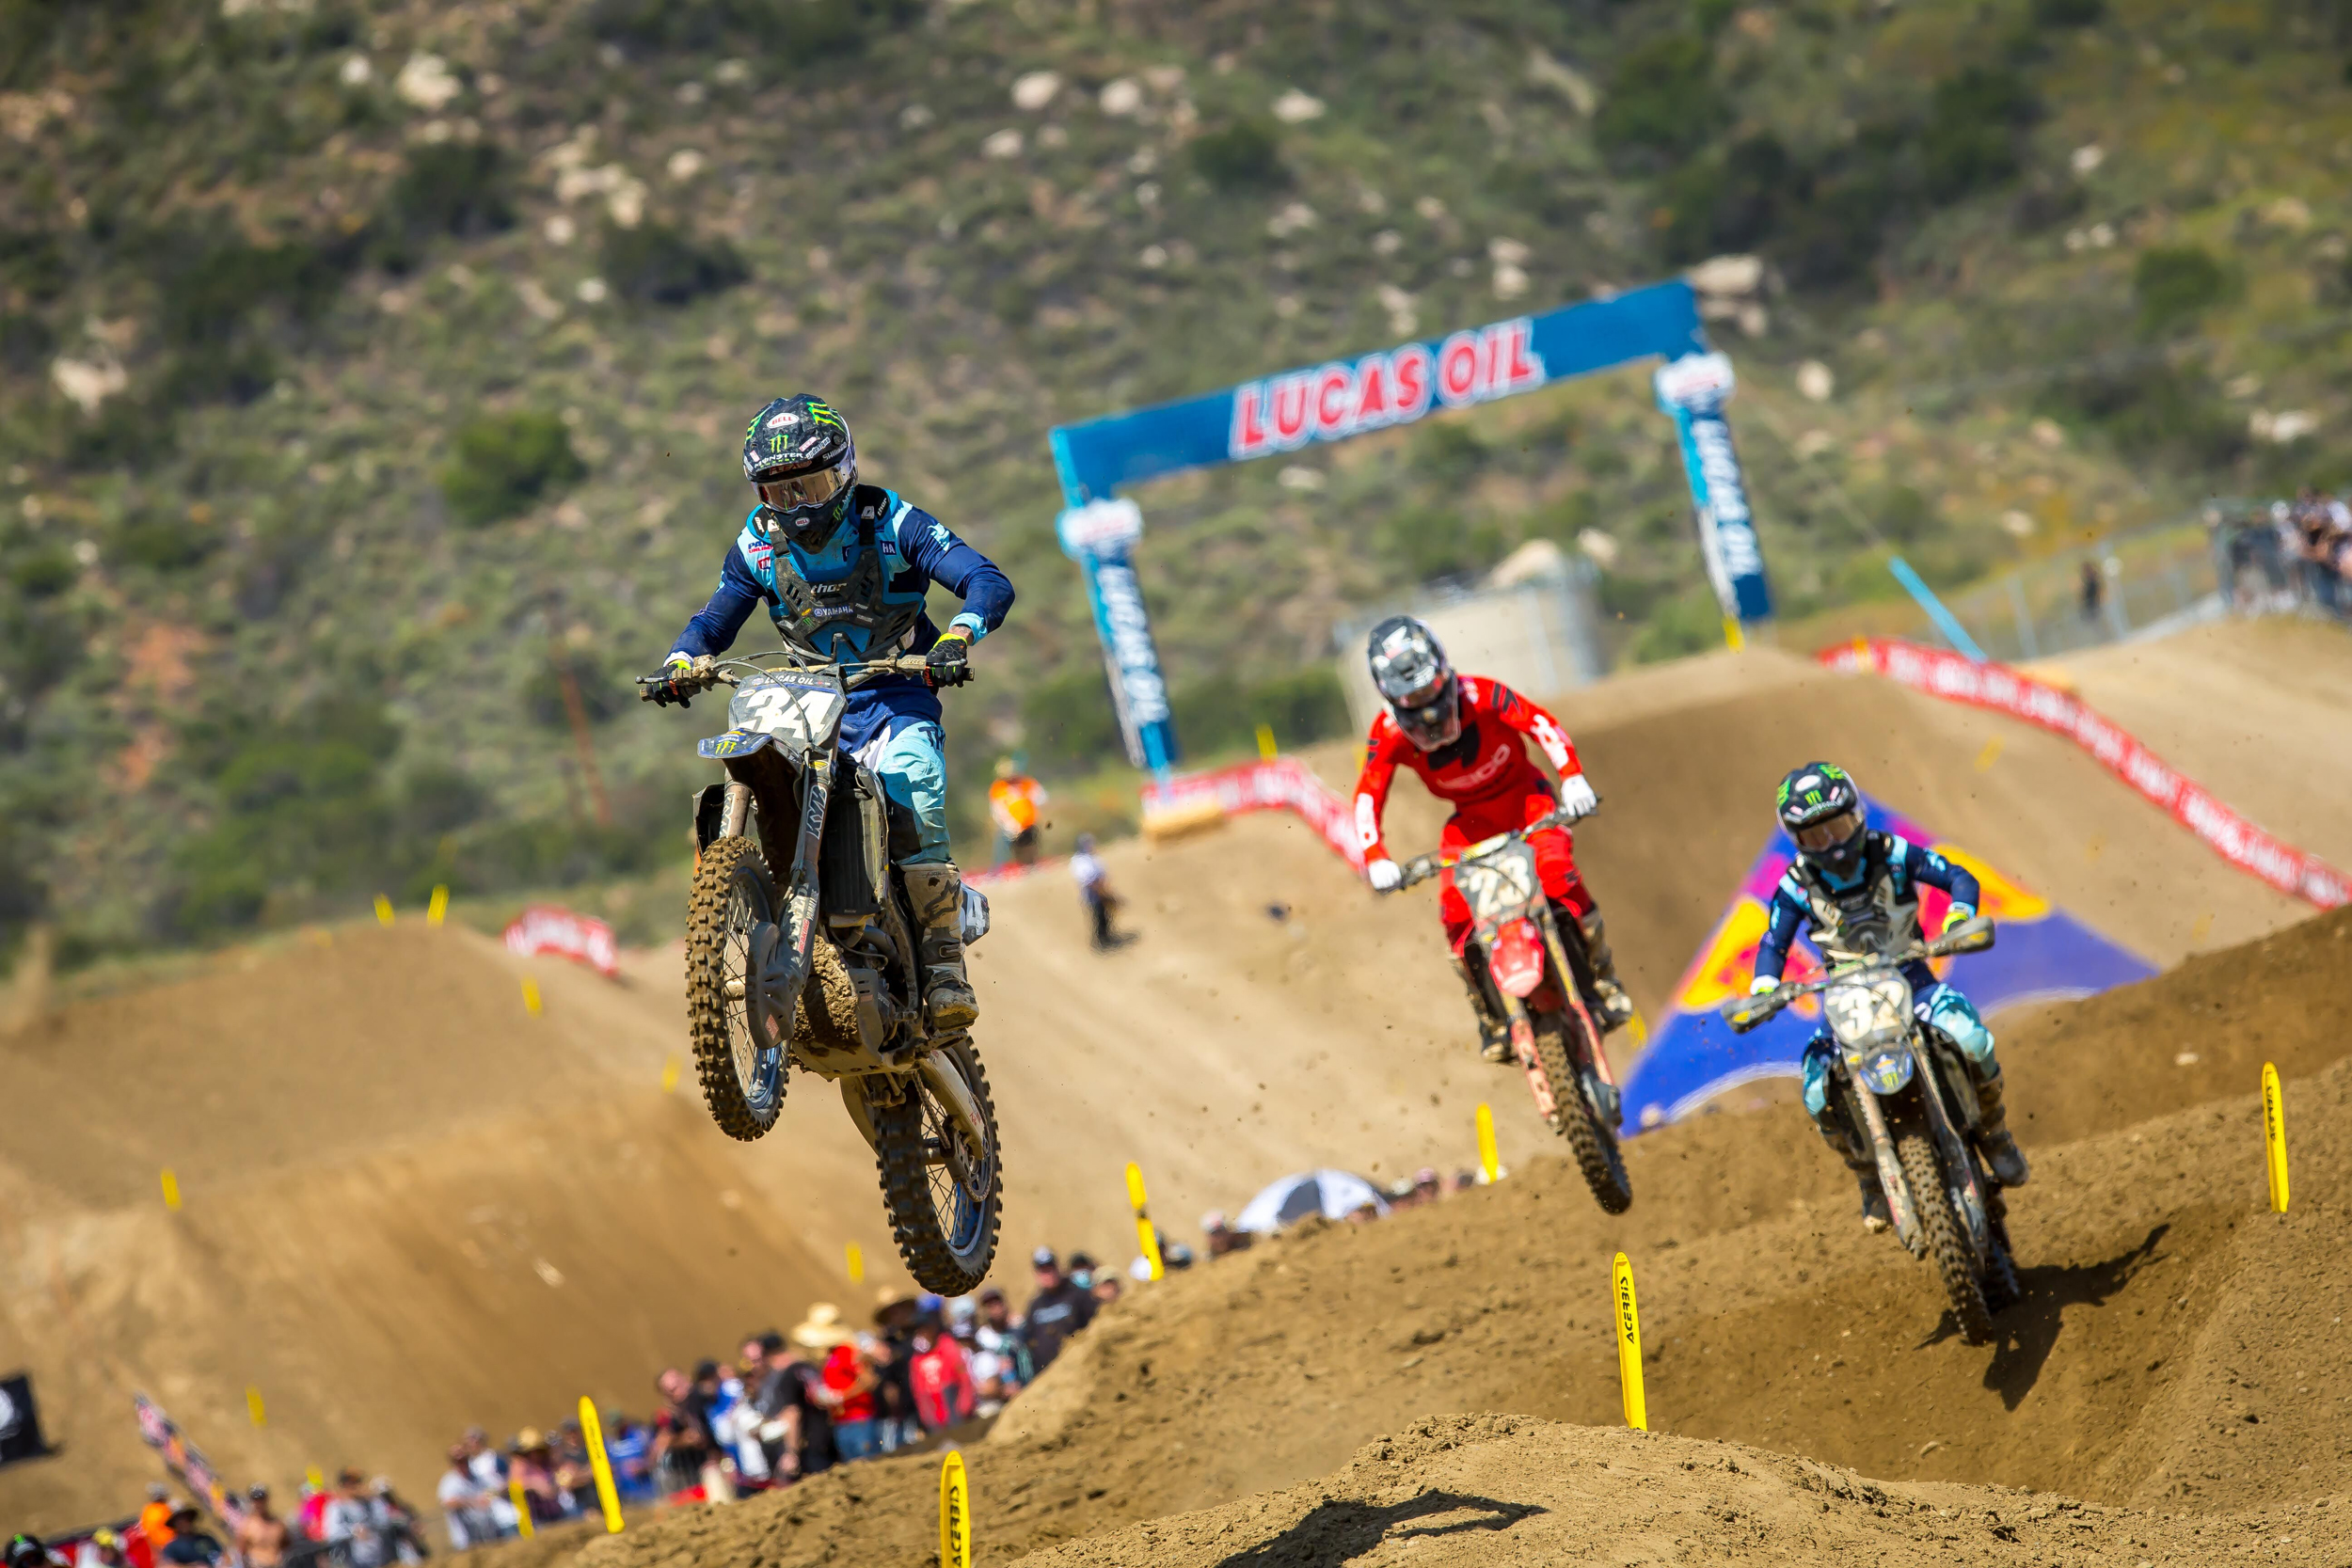 Lucas Oil Fox Raceway National - Ferrandis' strong second moto landed him on the overall podium. Photo- Rich Shepherd